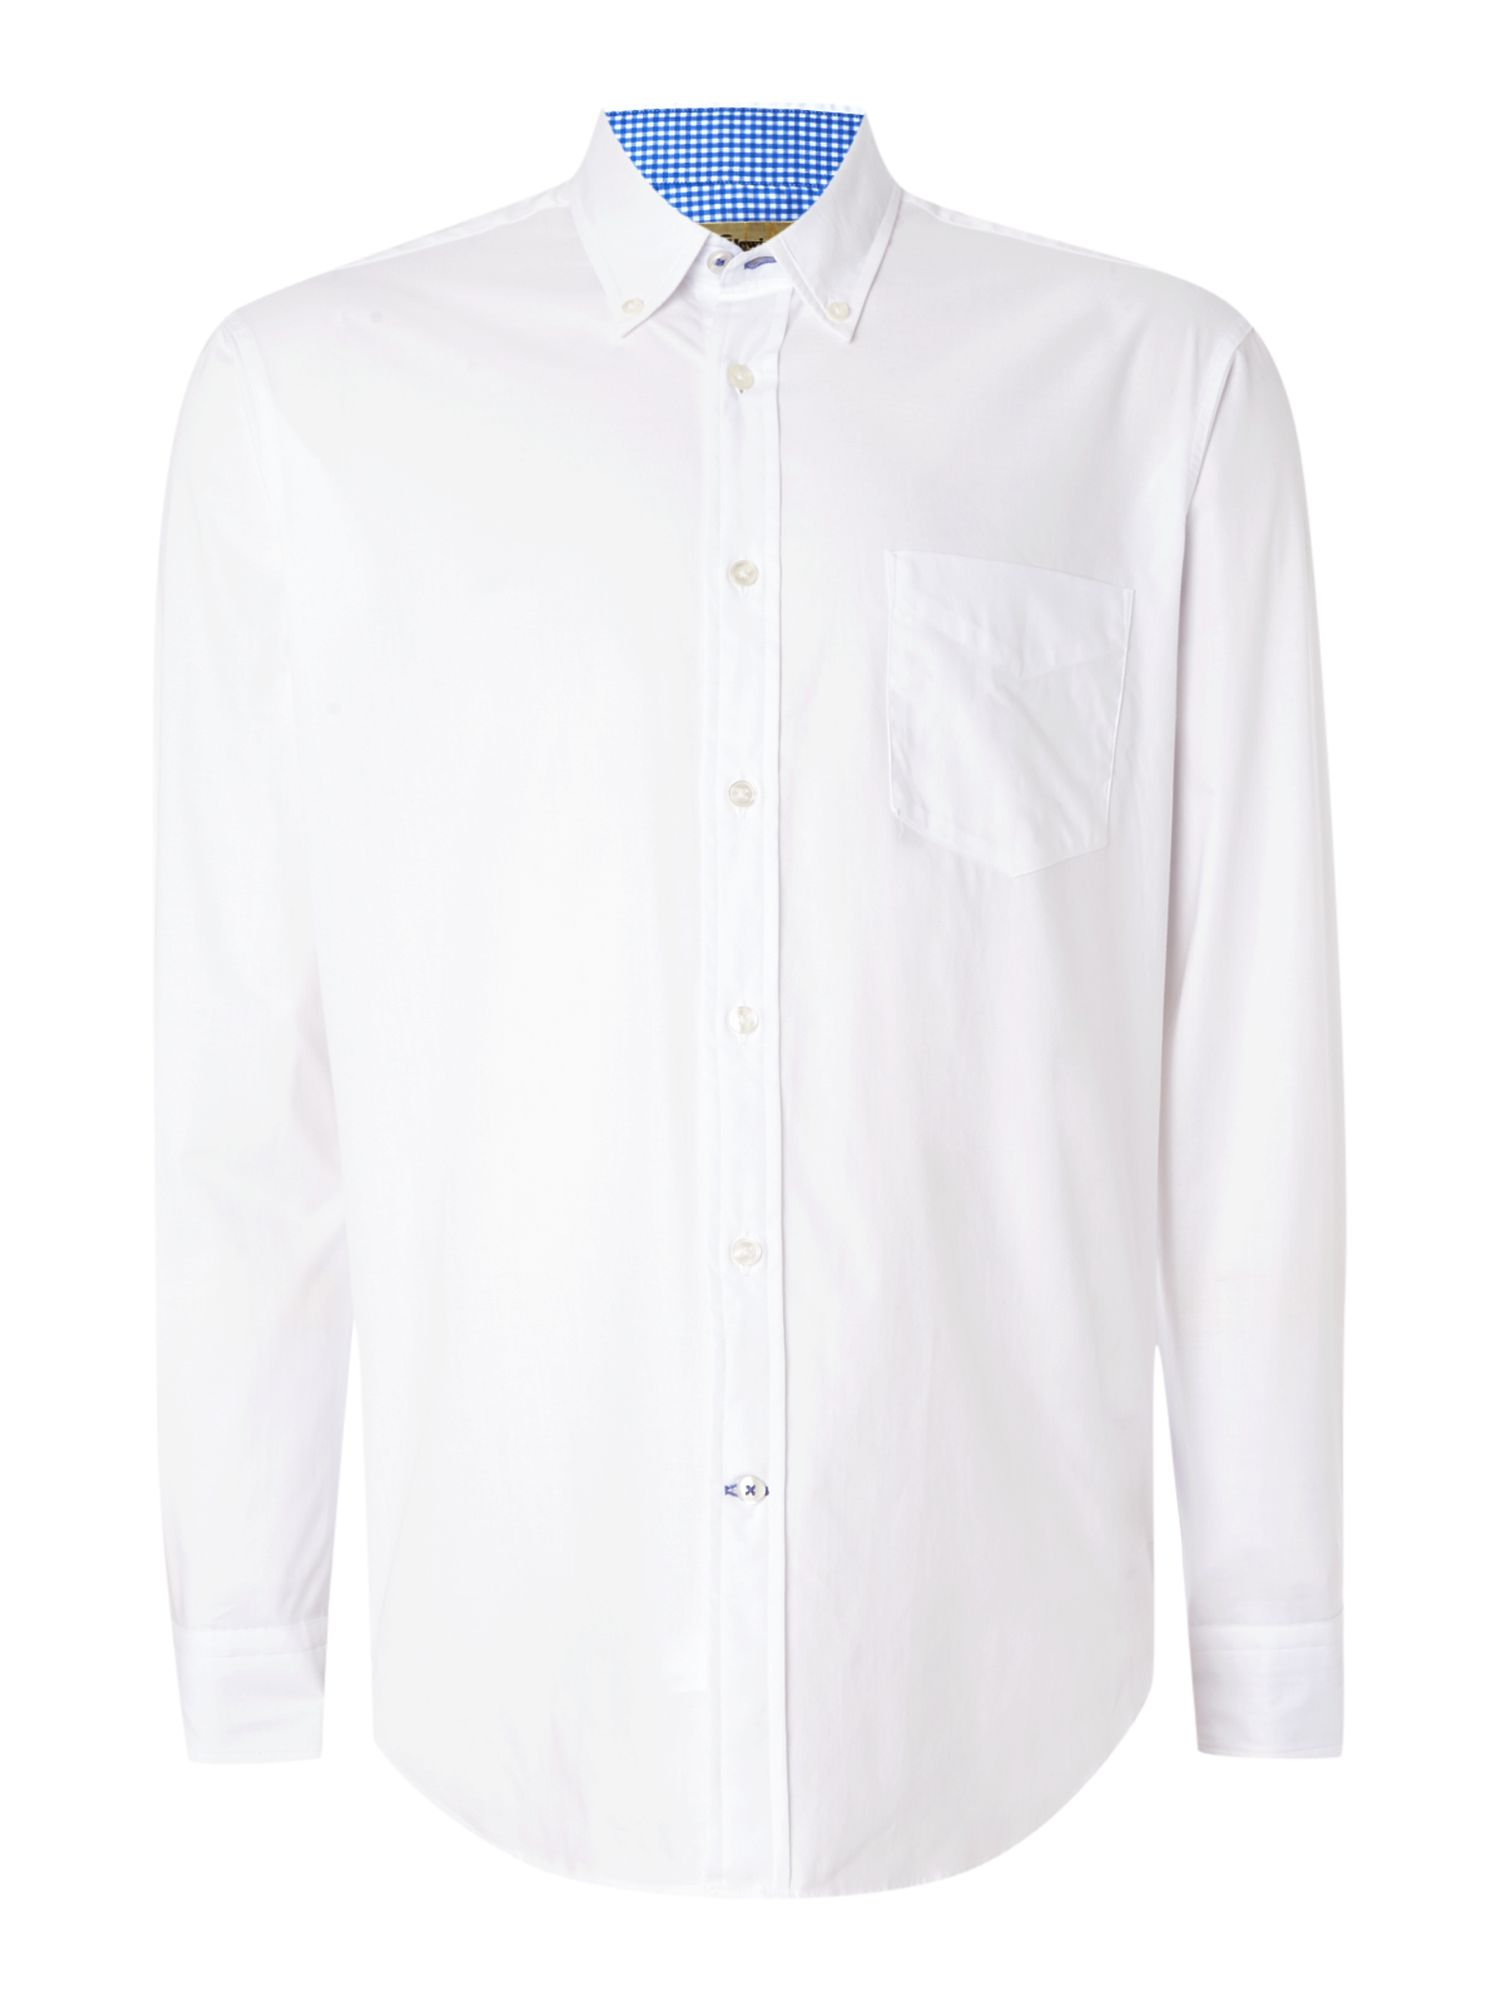 TM Lewin Men's TM Lewin Oxford Relaxed Fit Casual Shirt, White